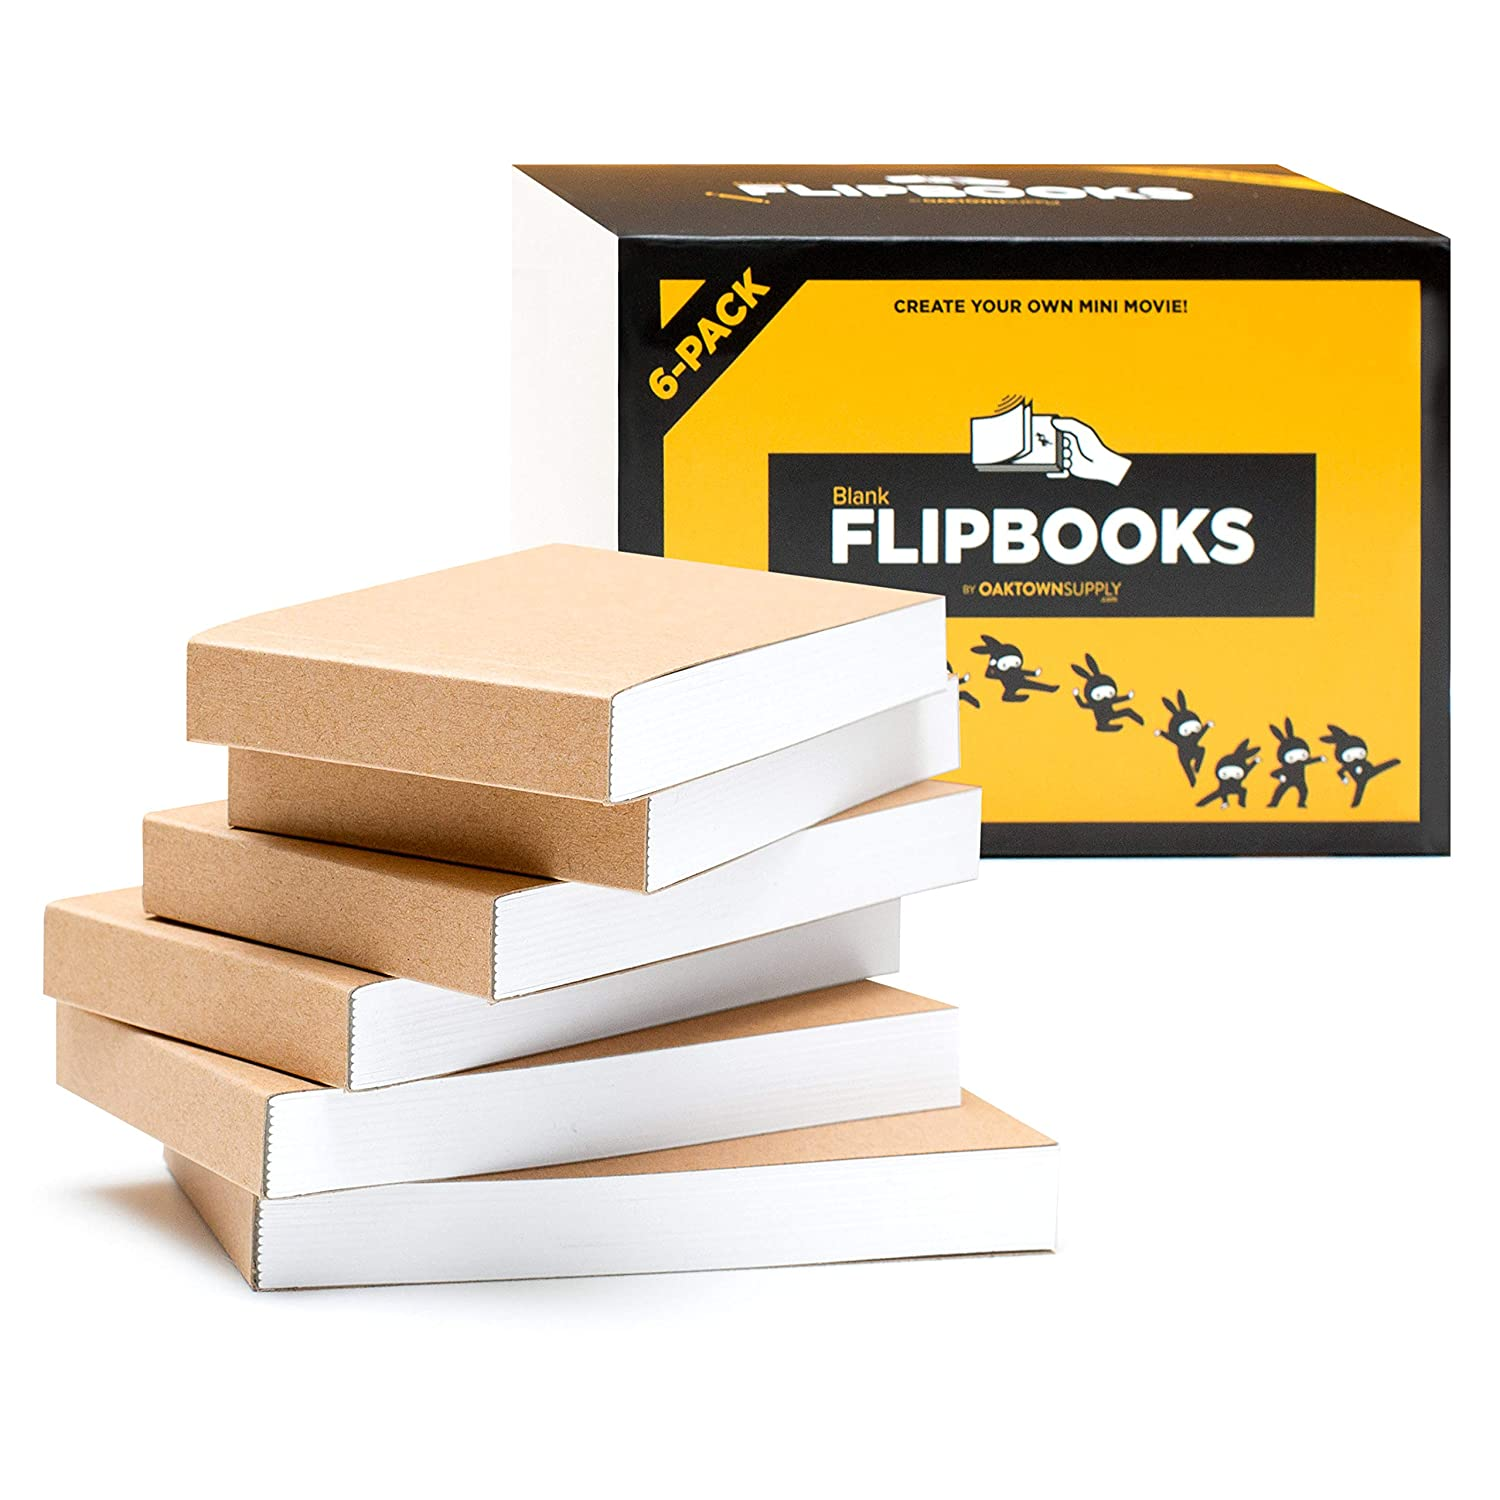 """Blank Flipbooks (Flip Book) for Animation, Sketching, and Cartoon Creation, 6 Pack, 4.5"""" x 2.5"""", 180 Pages (90 Sheets) :: Thick, No Bleed Drawing Paper with Sewn Binding :: Fun, Creative Craft for Kid"""